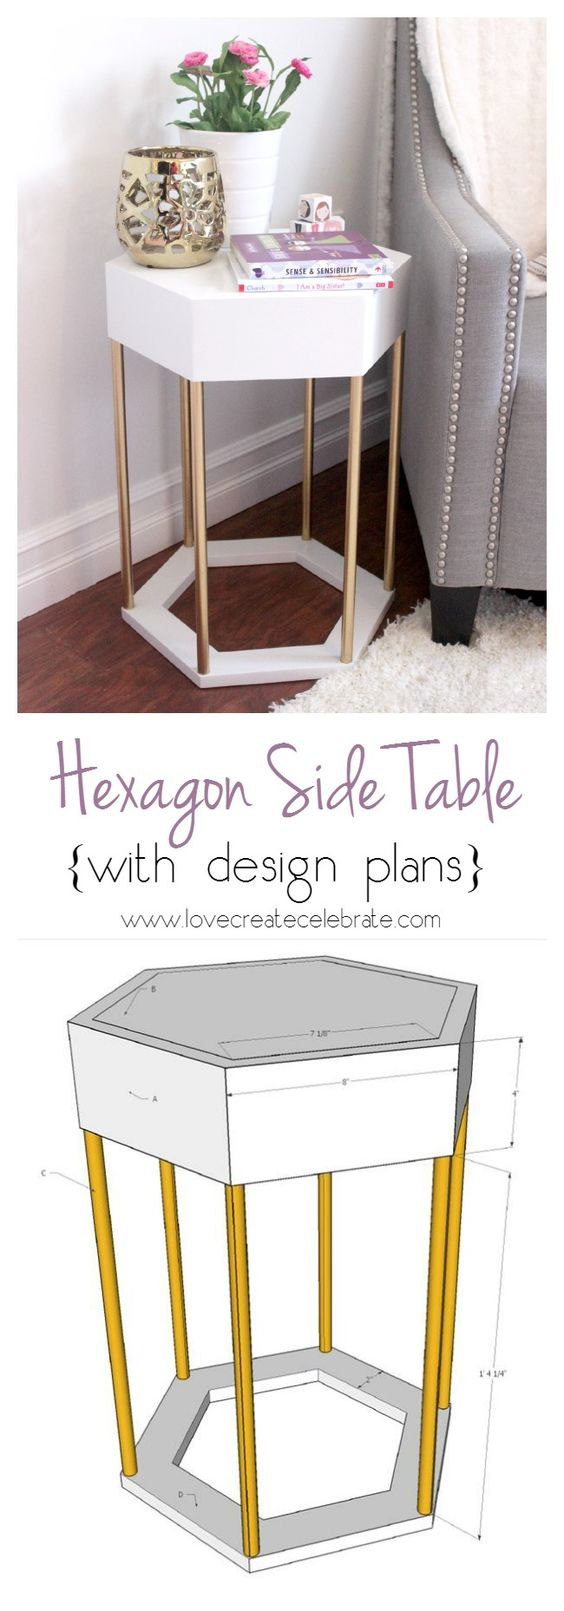 awesome diy side table ideas for outdoors and indoors hative tutorials ceramic accent outdoor modern hexagon emerald green dining chairs navy blue bedside west elm tripod metal